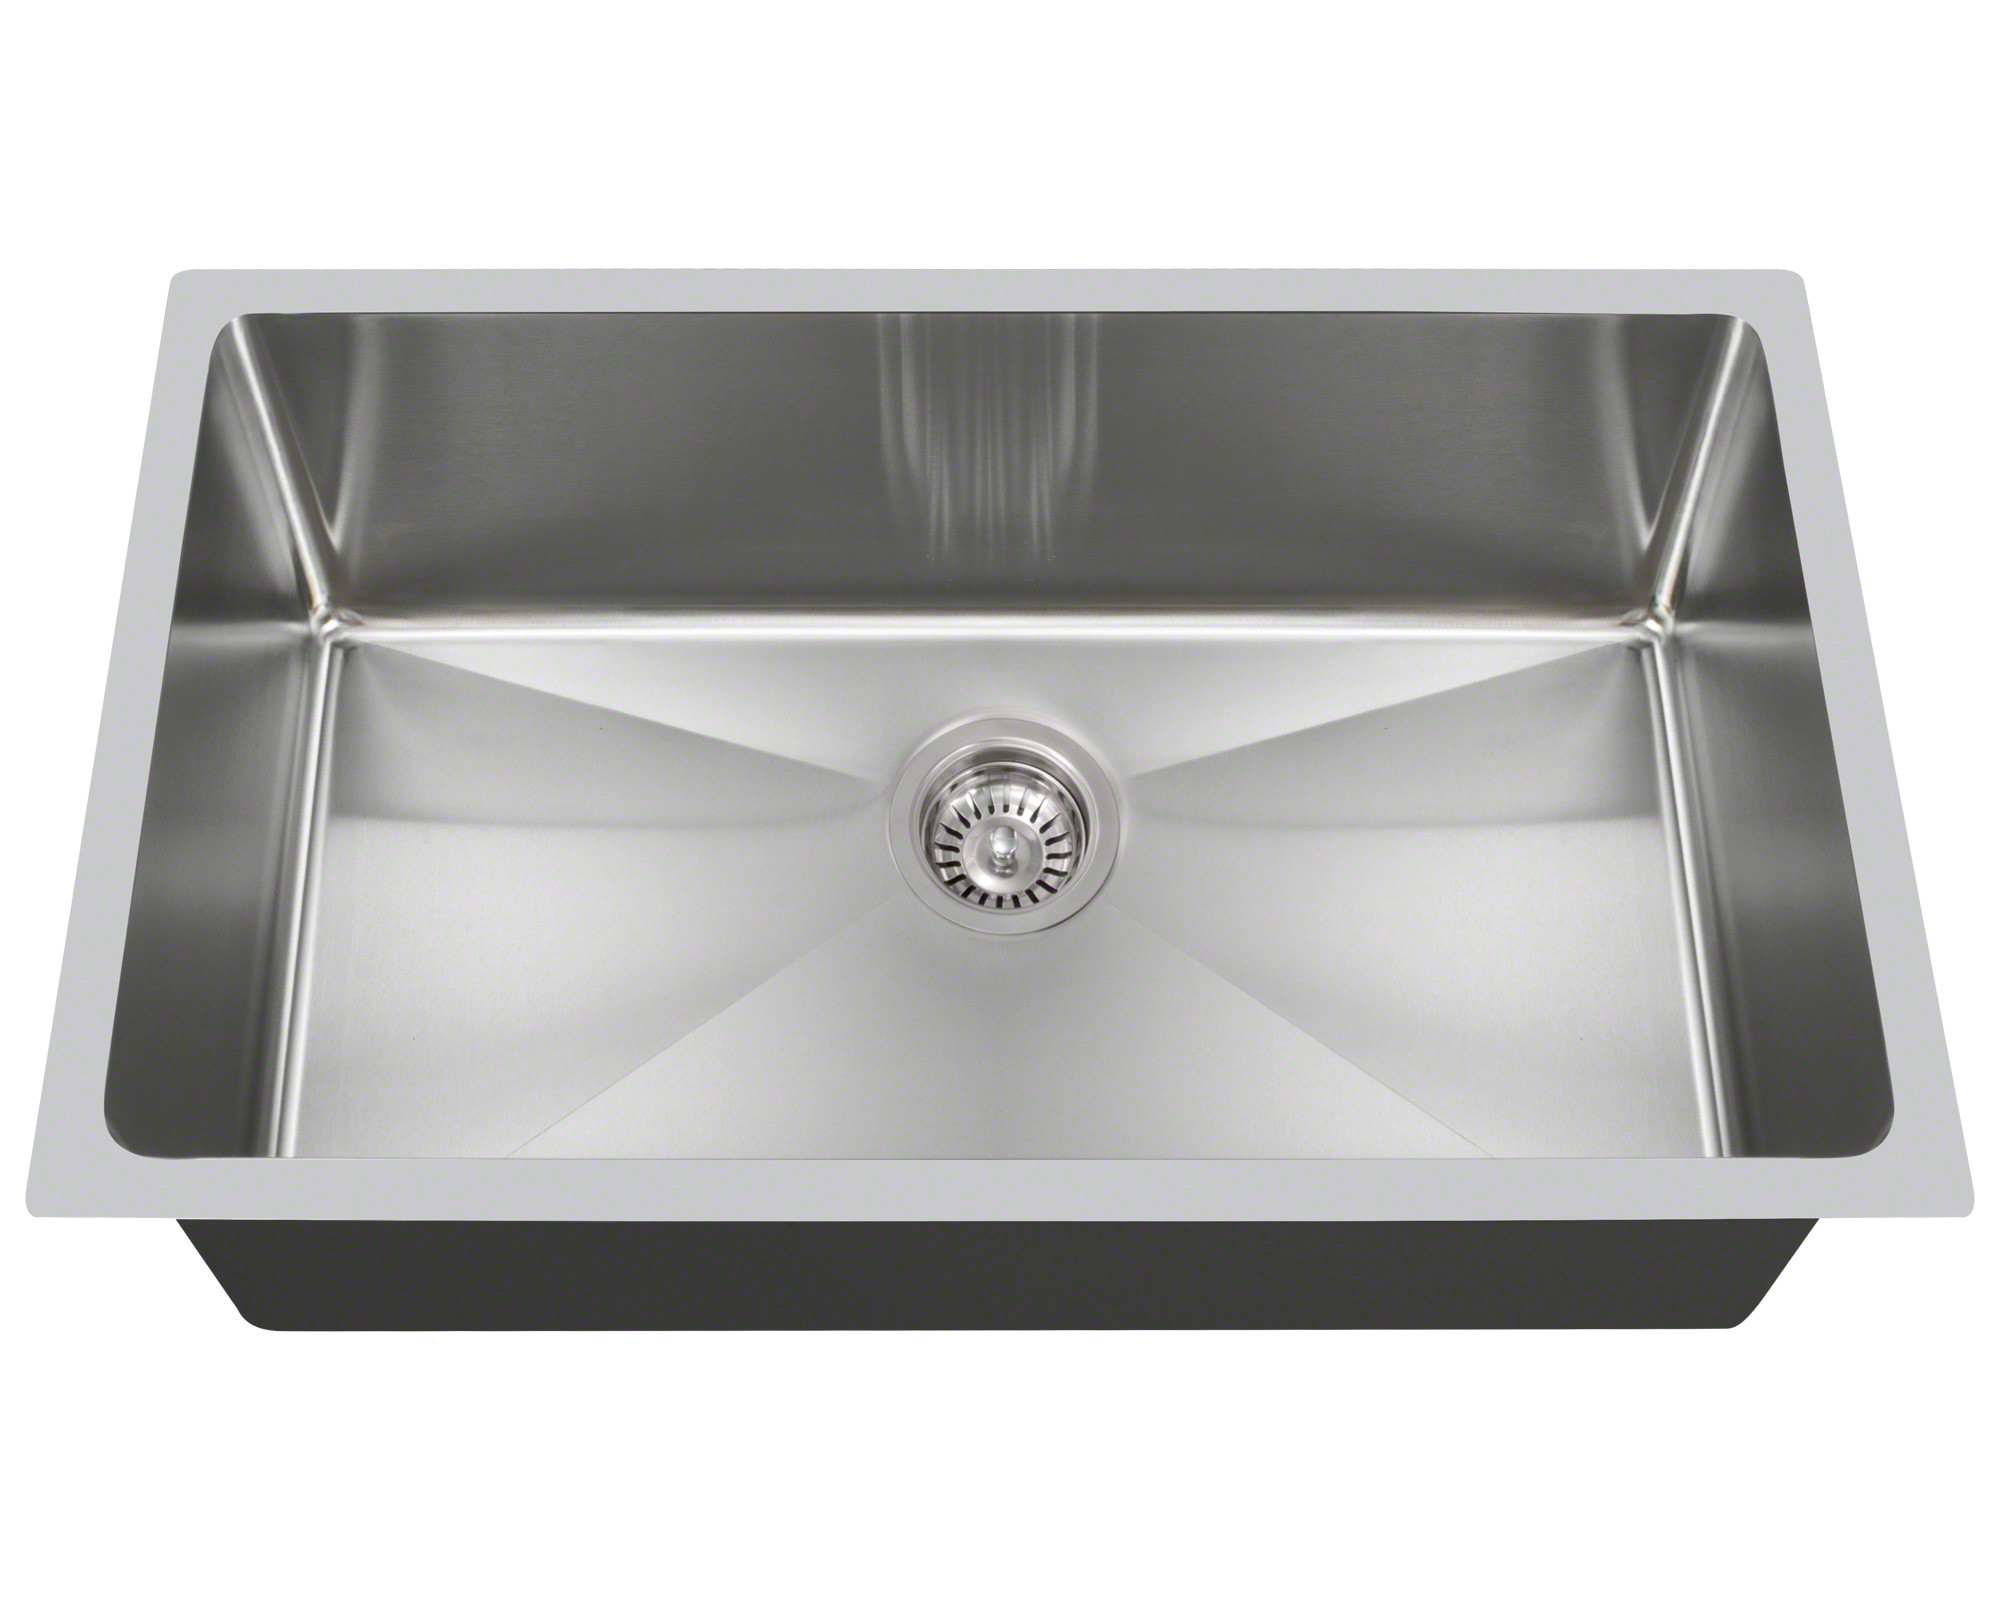 With its curved corners, the PS0213 is designed to provide a softer look and easier cleaning. It is the larger of the two single-bowl, 3/4'' radius sinks that we offer. Certain to handle any size kitchen chore, the PS0213 is formed from a single piece of